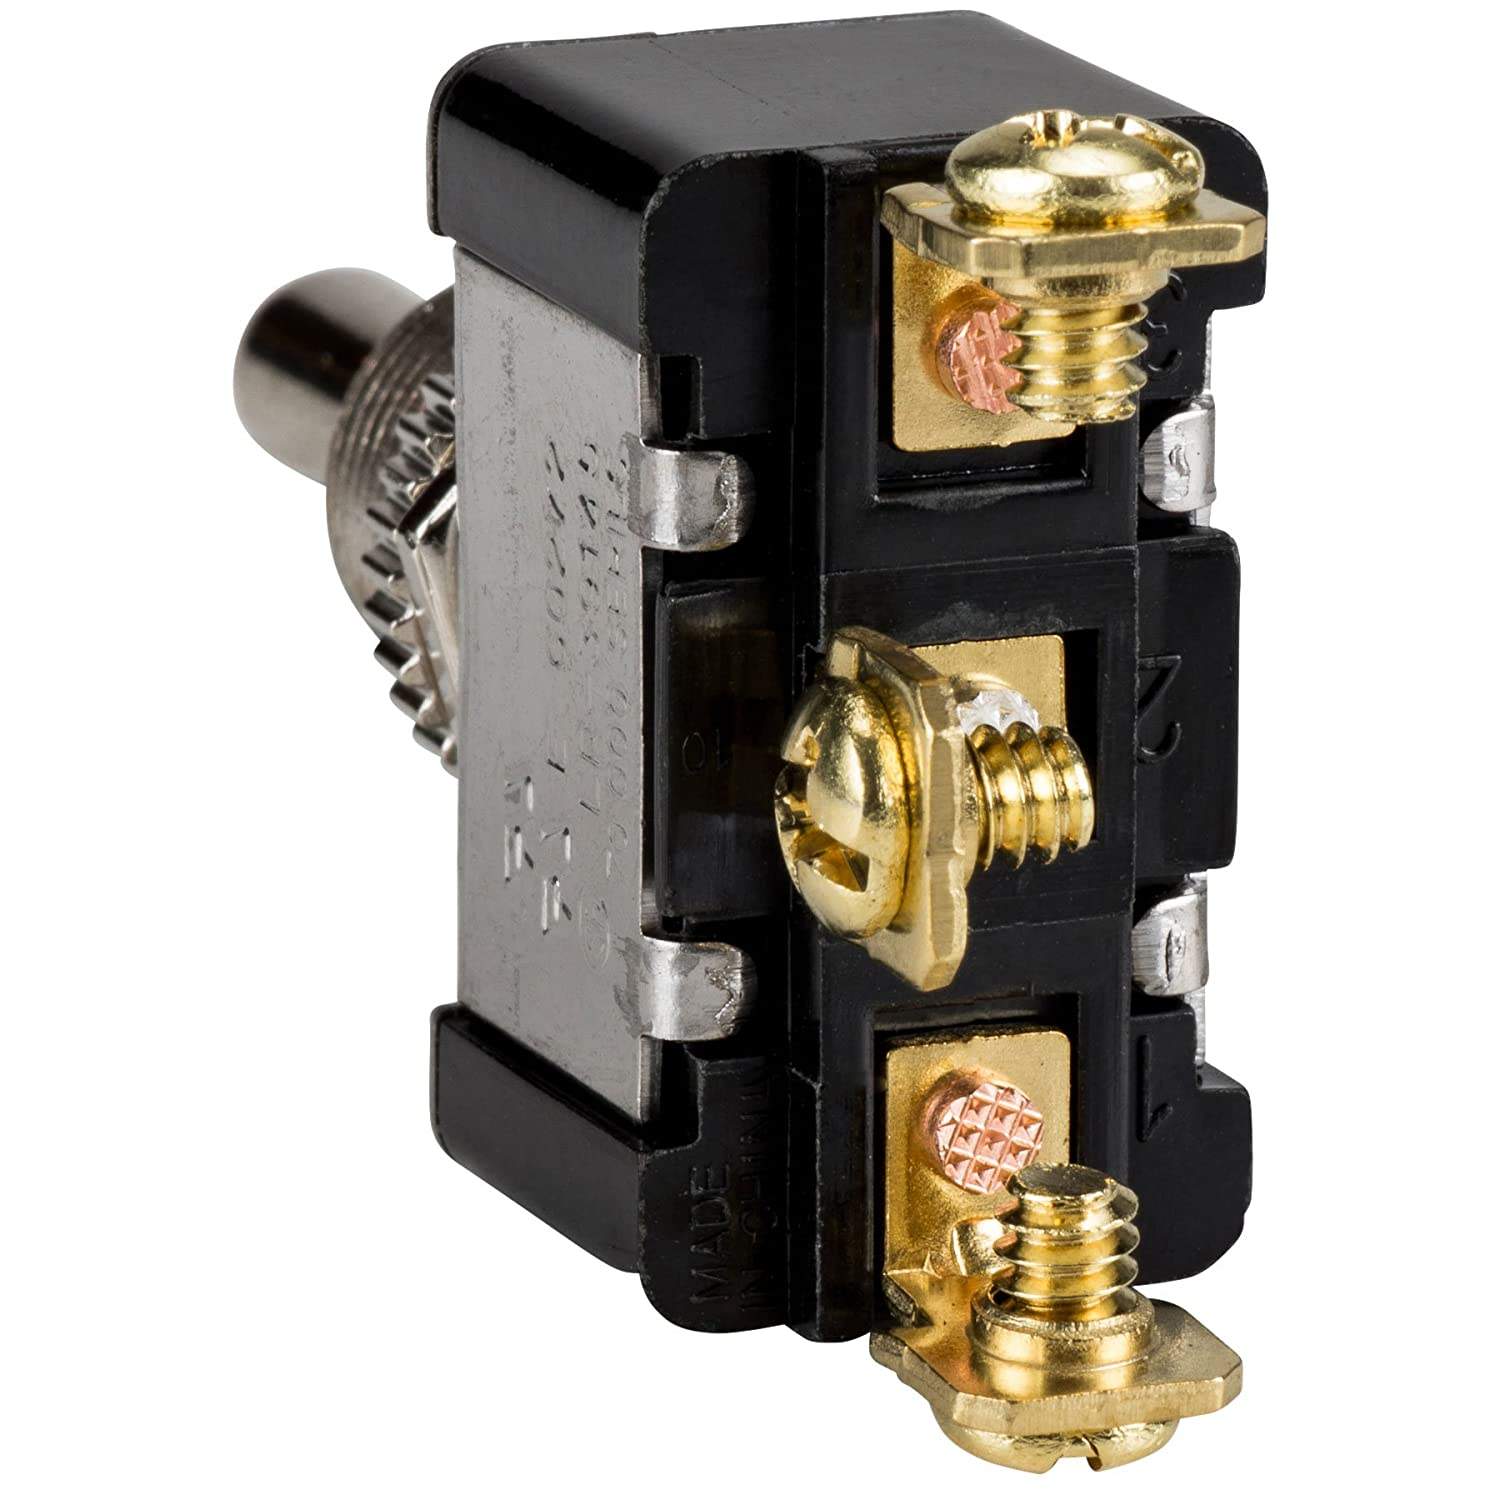 Spdt Heavy Duty Toggle Switch Center Off Momentary Switches 20 Amp Screw Terminal Spst Onoff Electronics